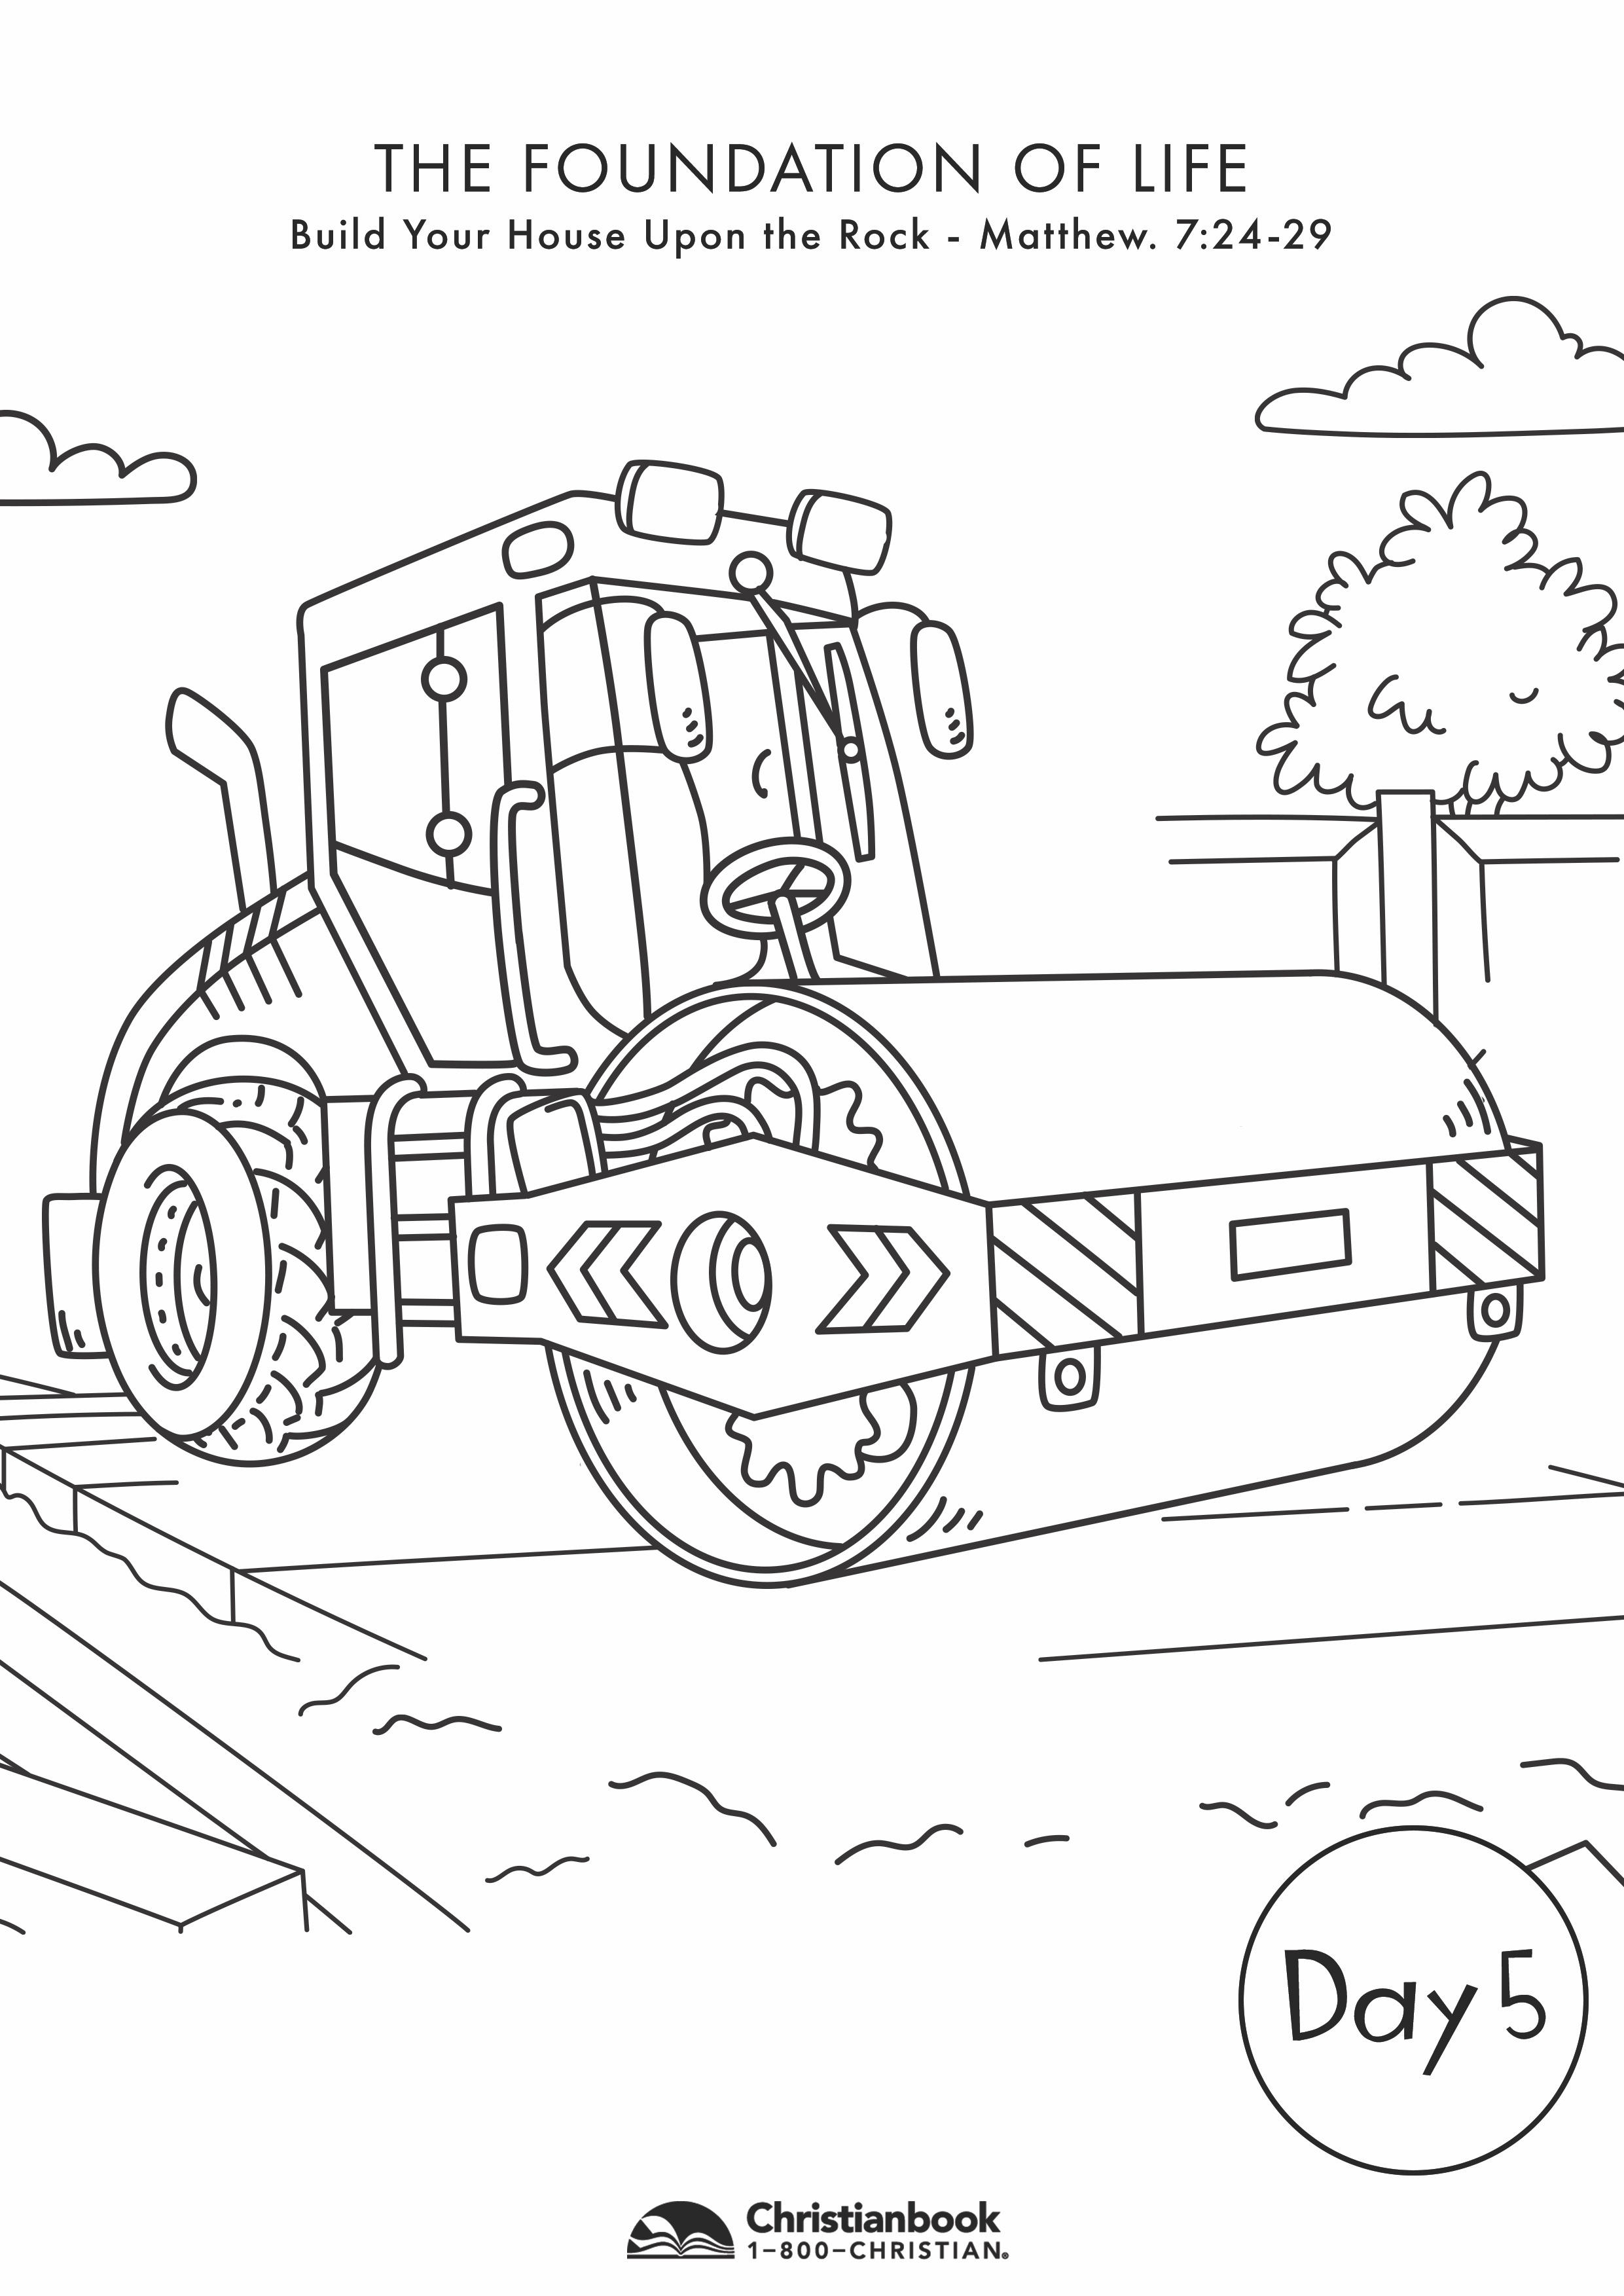 vbs coloring pages 2020 finn rocky railway coloring page in 2020 coloring pages pages vbs coloring 2020